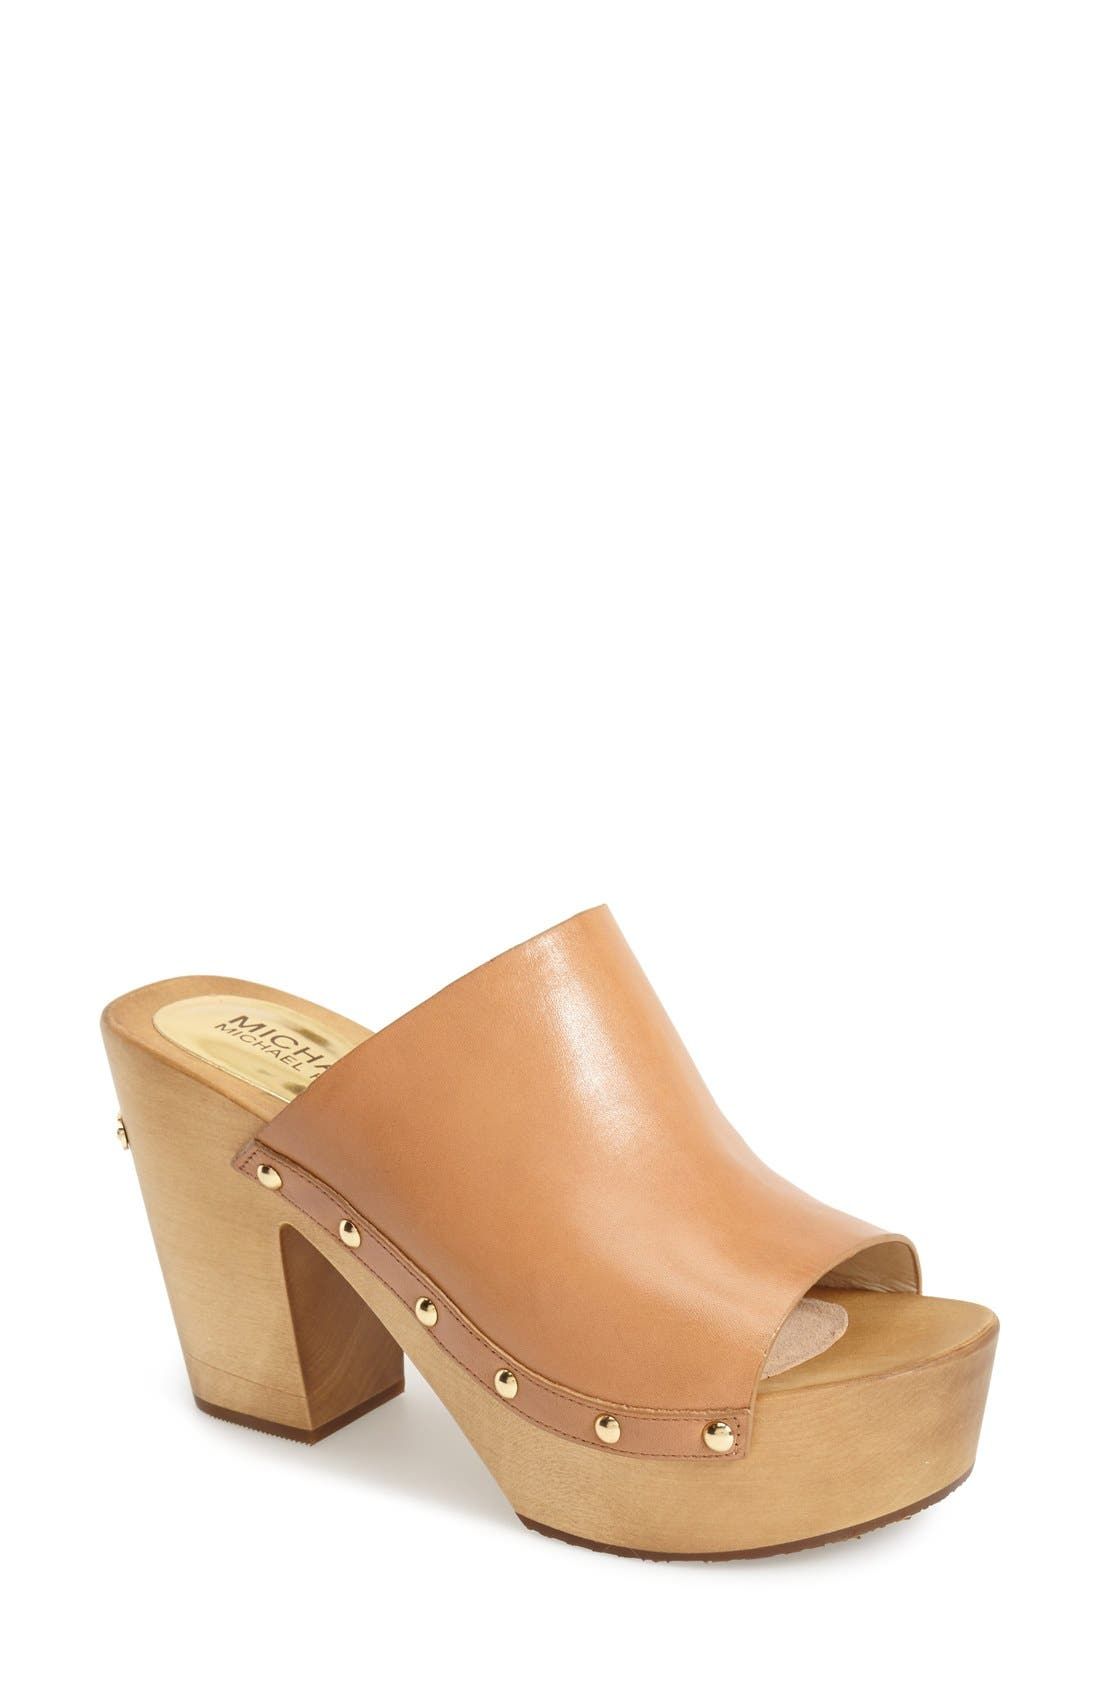 Alternate Image 1 Selected - MICHAEL Michael Kors 'Beatrice' Studded Open Toe Clog (Women)